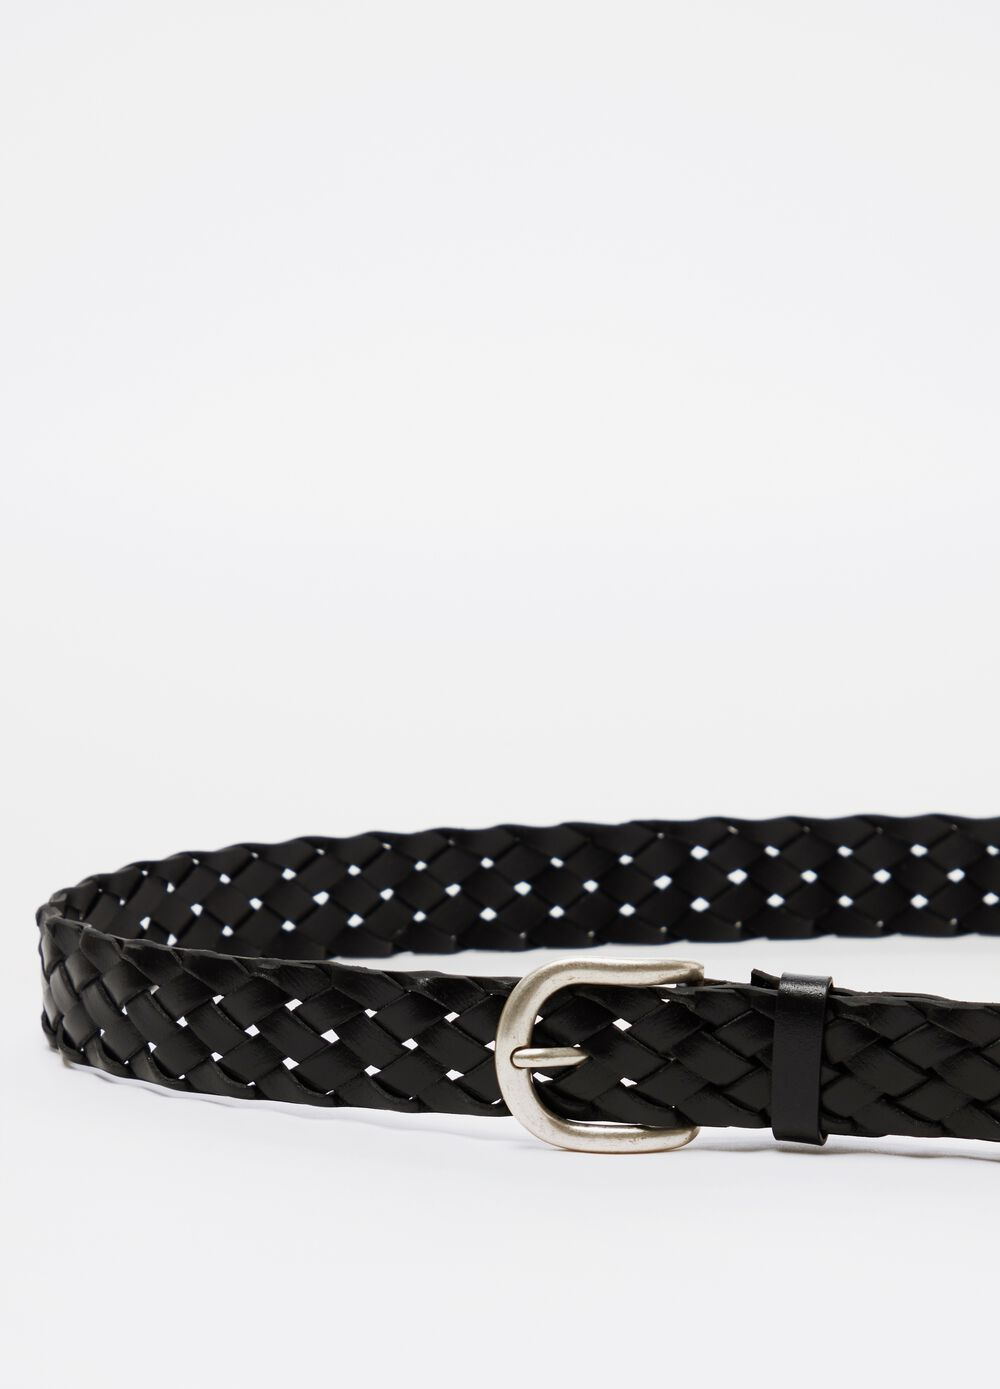 Braided real leather belt with buckle